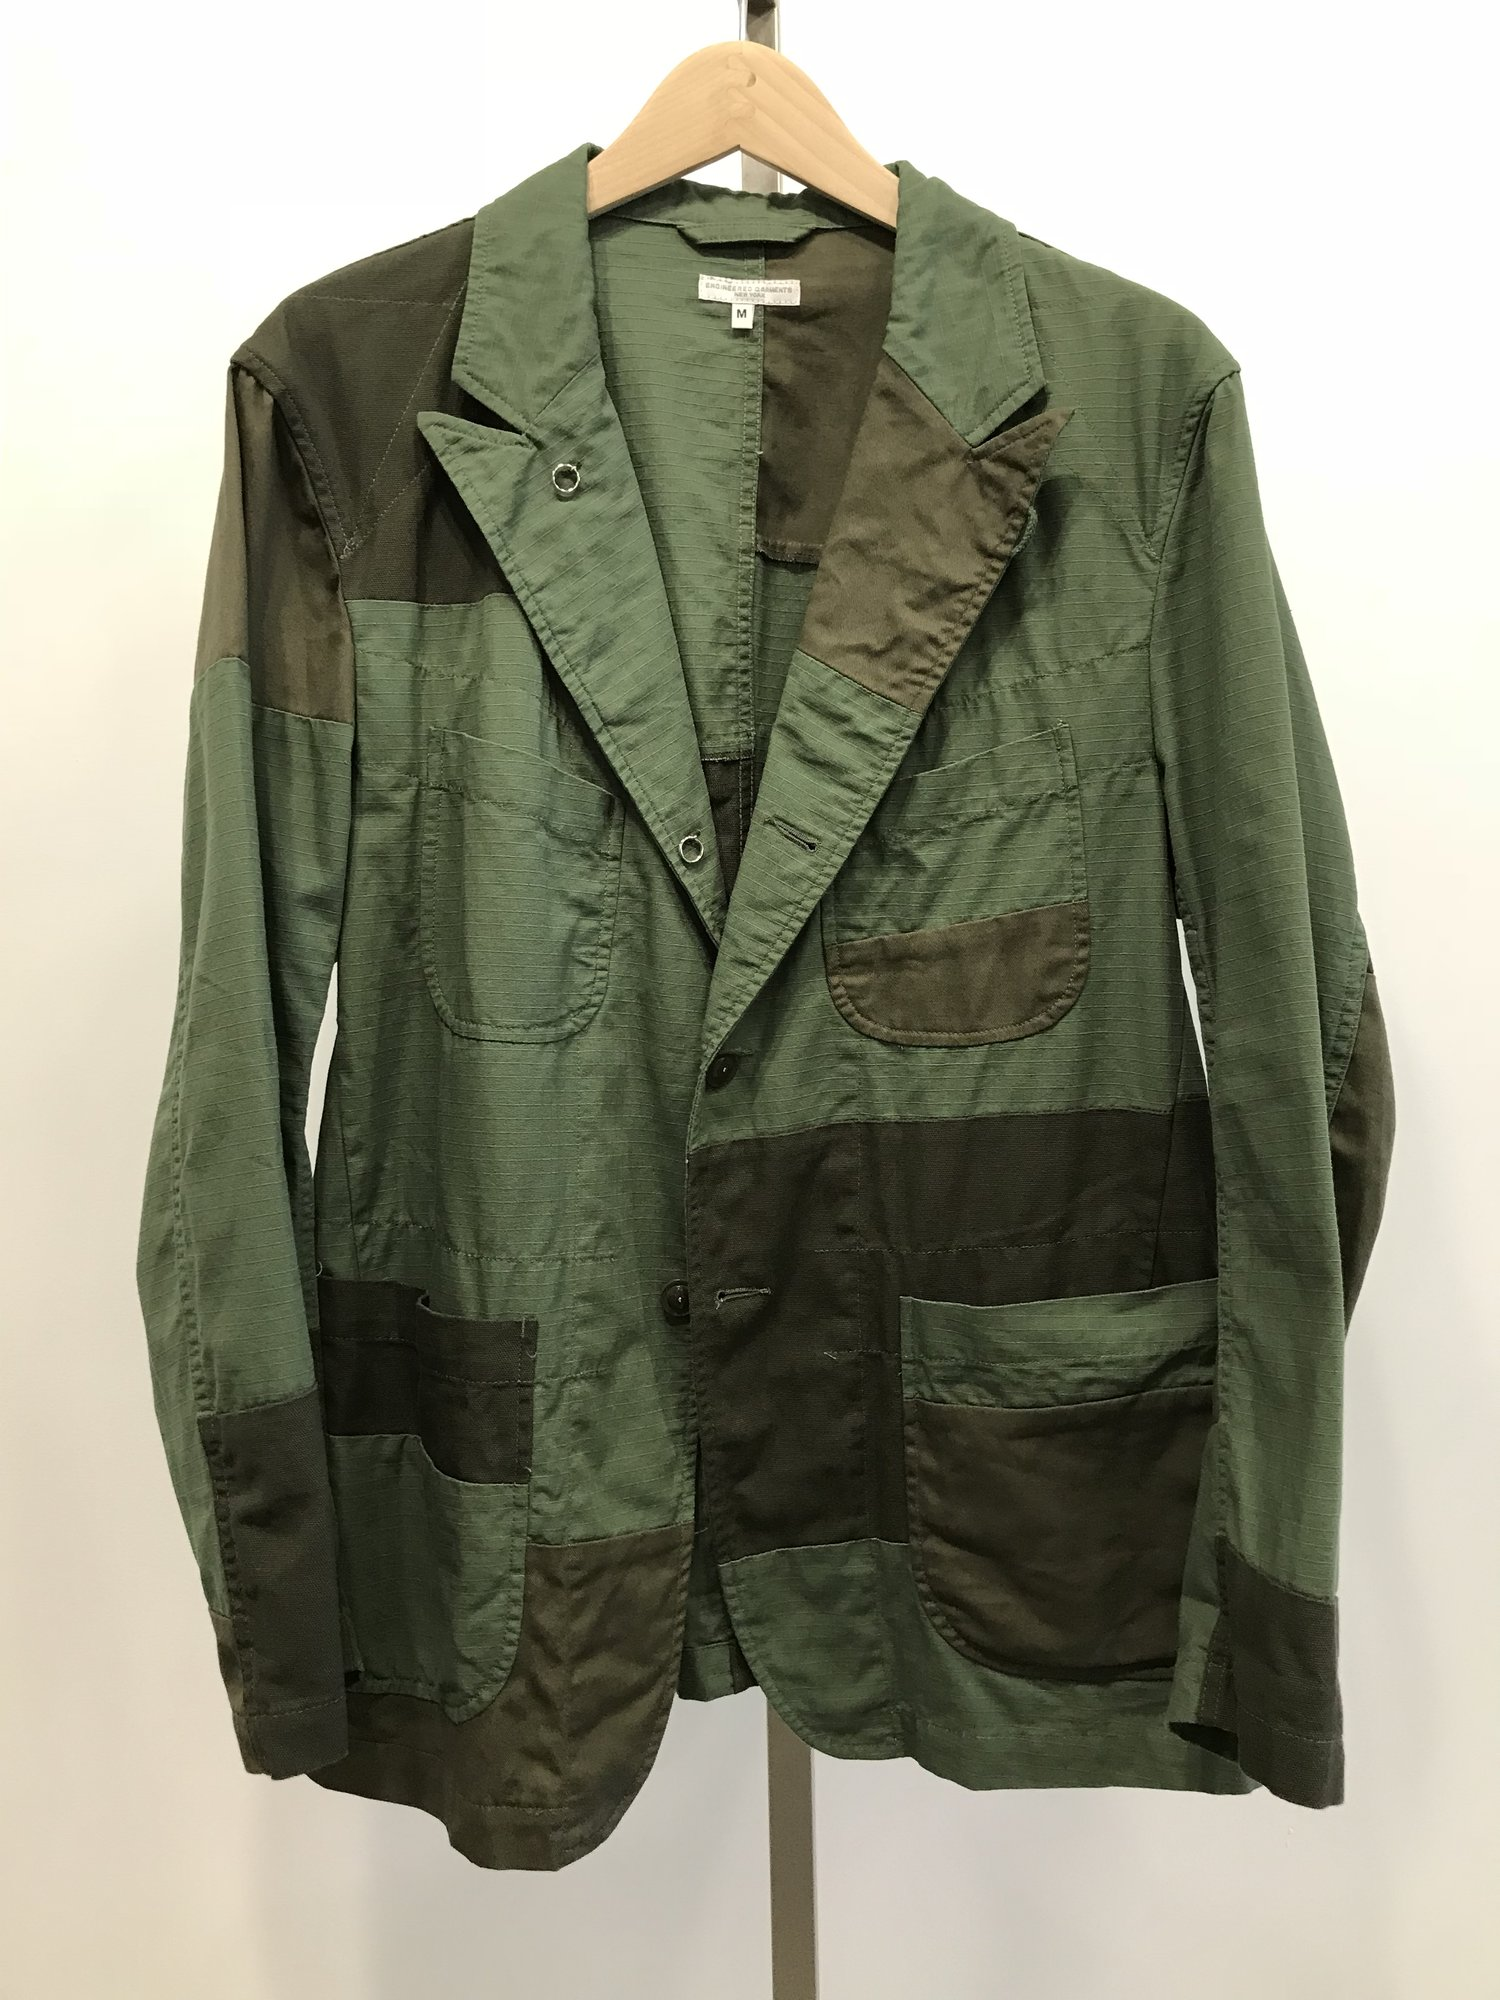 19SD005 Bedford Jacket CT010 Olive Cotton Ripstop.JPG